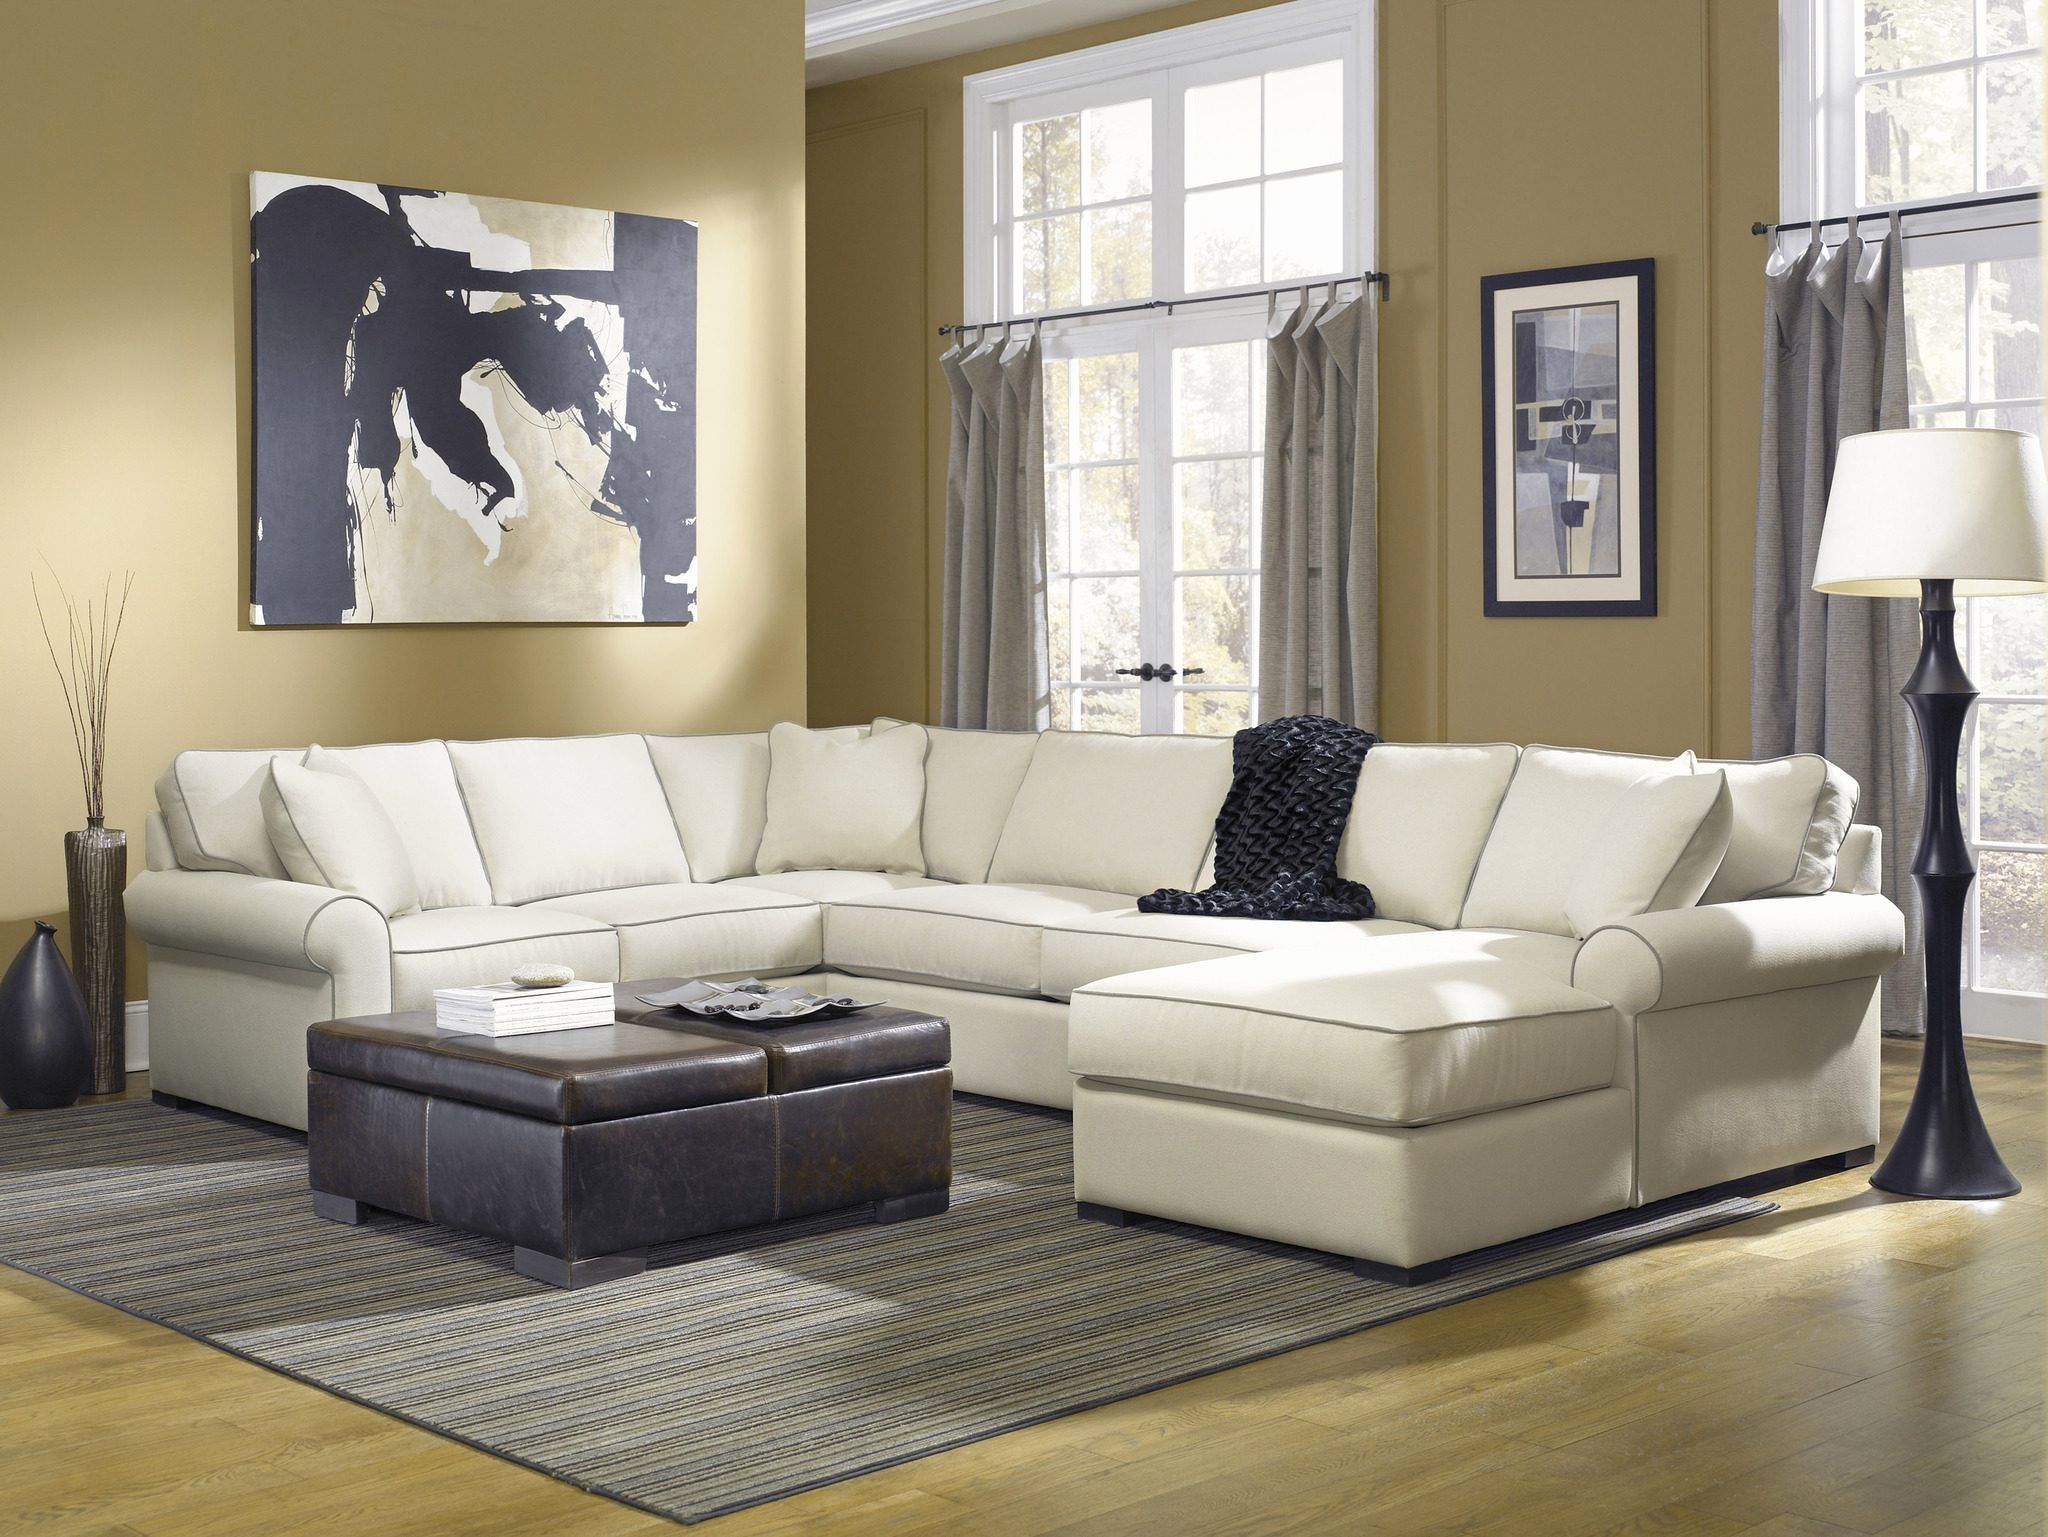 Miraculous Best Of Down Filled Sectional Sofa Pictures Down Filled Spiritservingveterans Wood Chair Design Ideas Spiritservingveteransorg